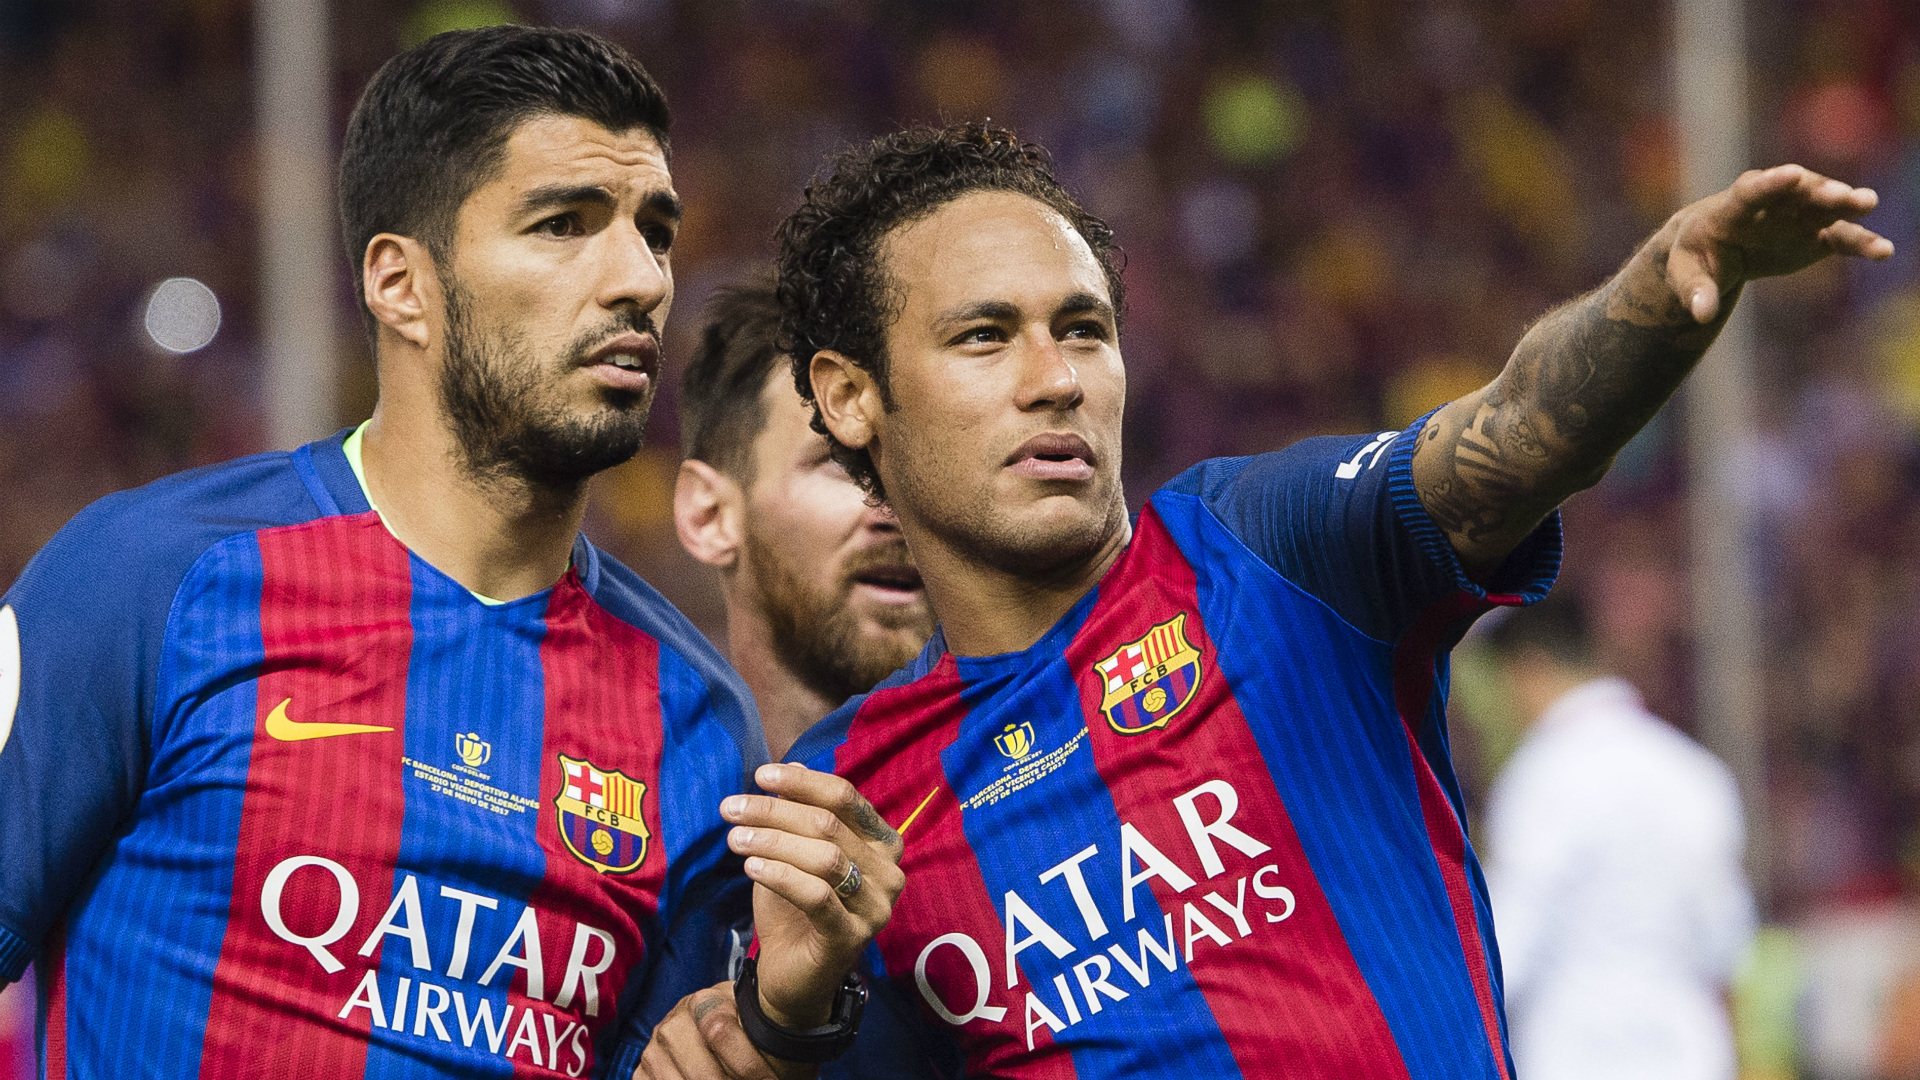 'He did everything possible to return' - Suarez reveals Neymar talks after failed Barcelona move